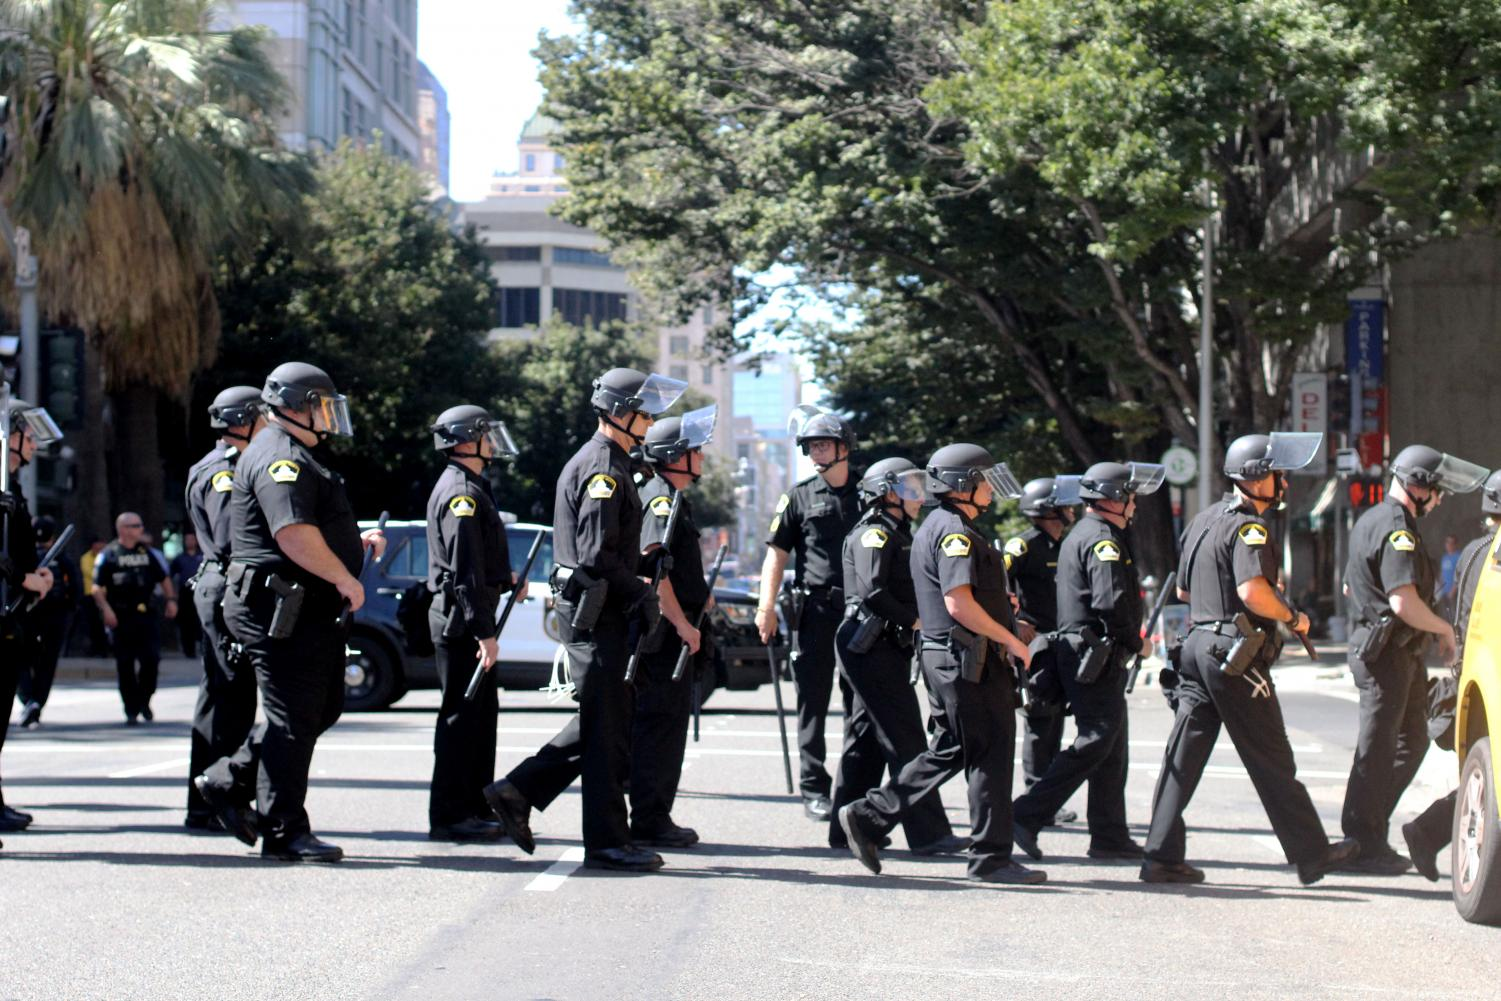 %0APolice+walk+onto+13th+Street+as+they+remove+the+blockade+on+J+Street.+Protestors+originally+on+J+and+13th+Street+marched+away+from+the+convention+center.+